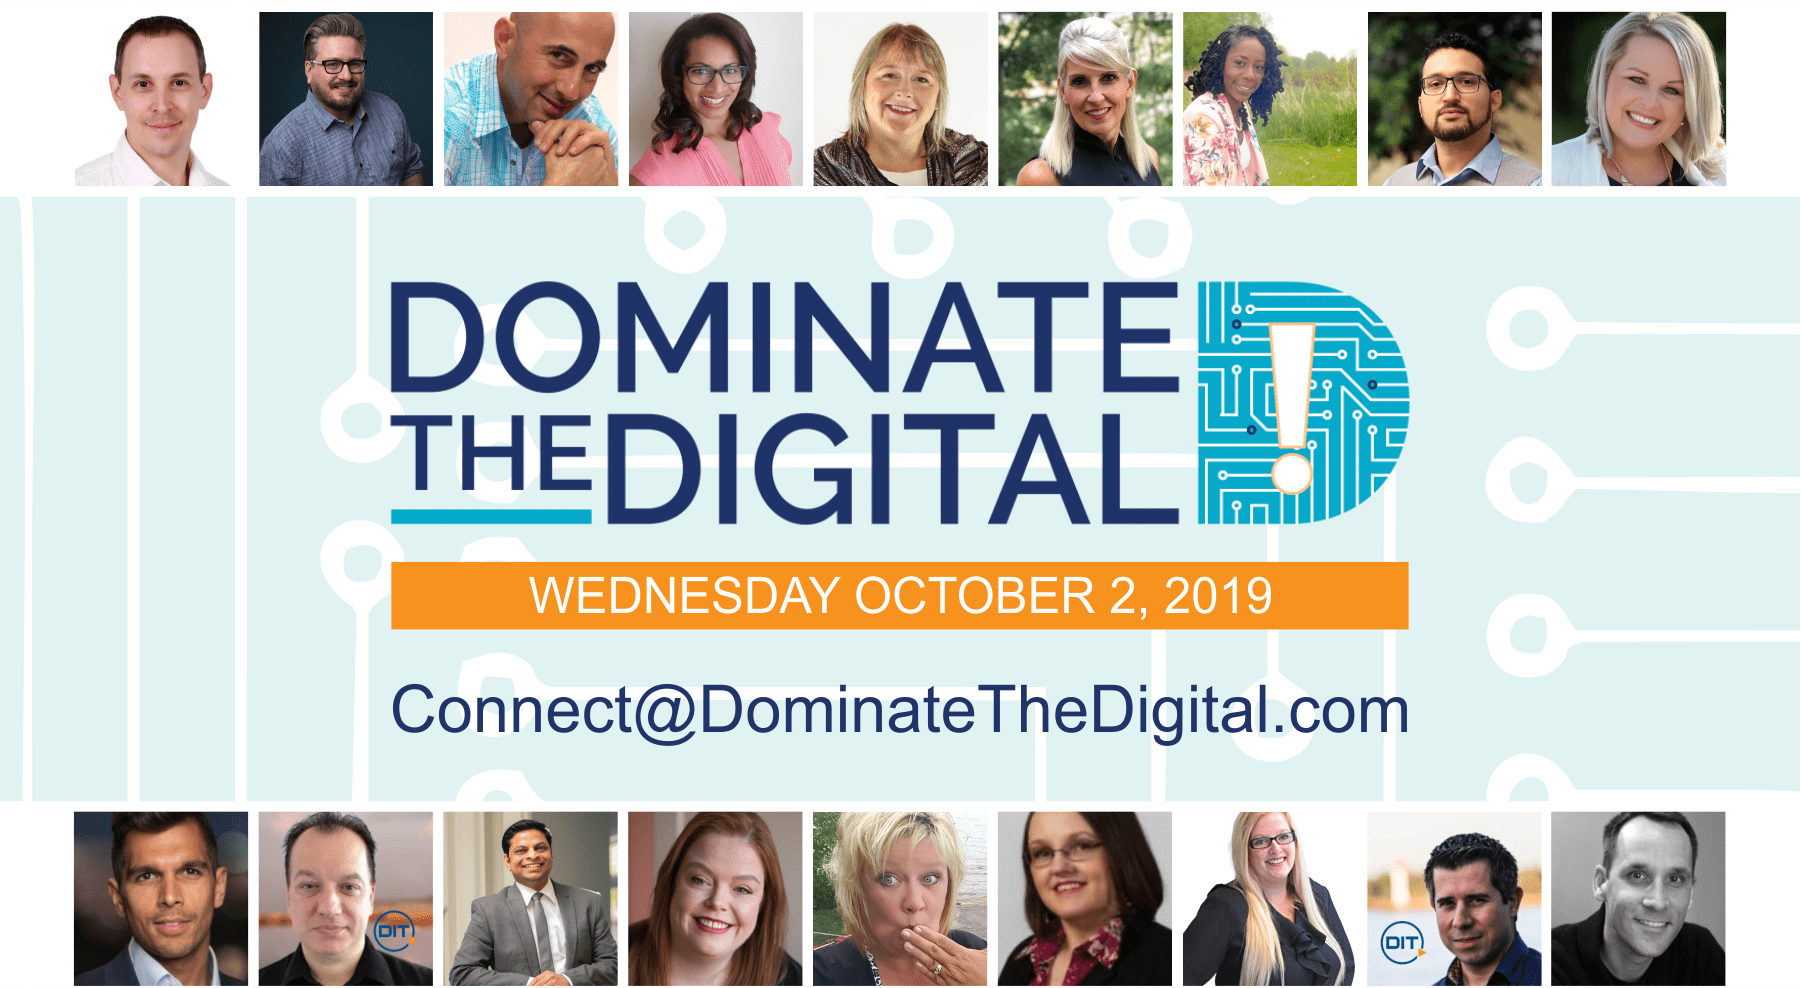 Dominate The Digital Postcard